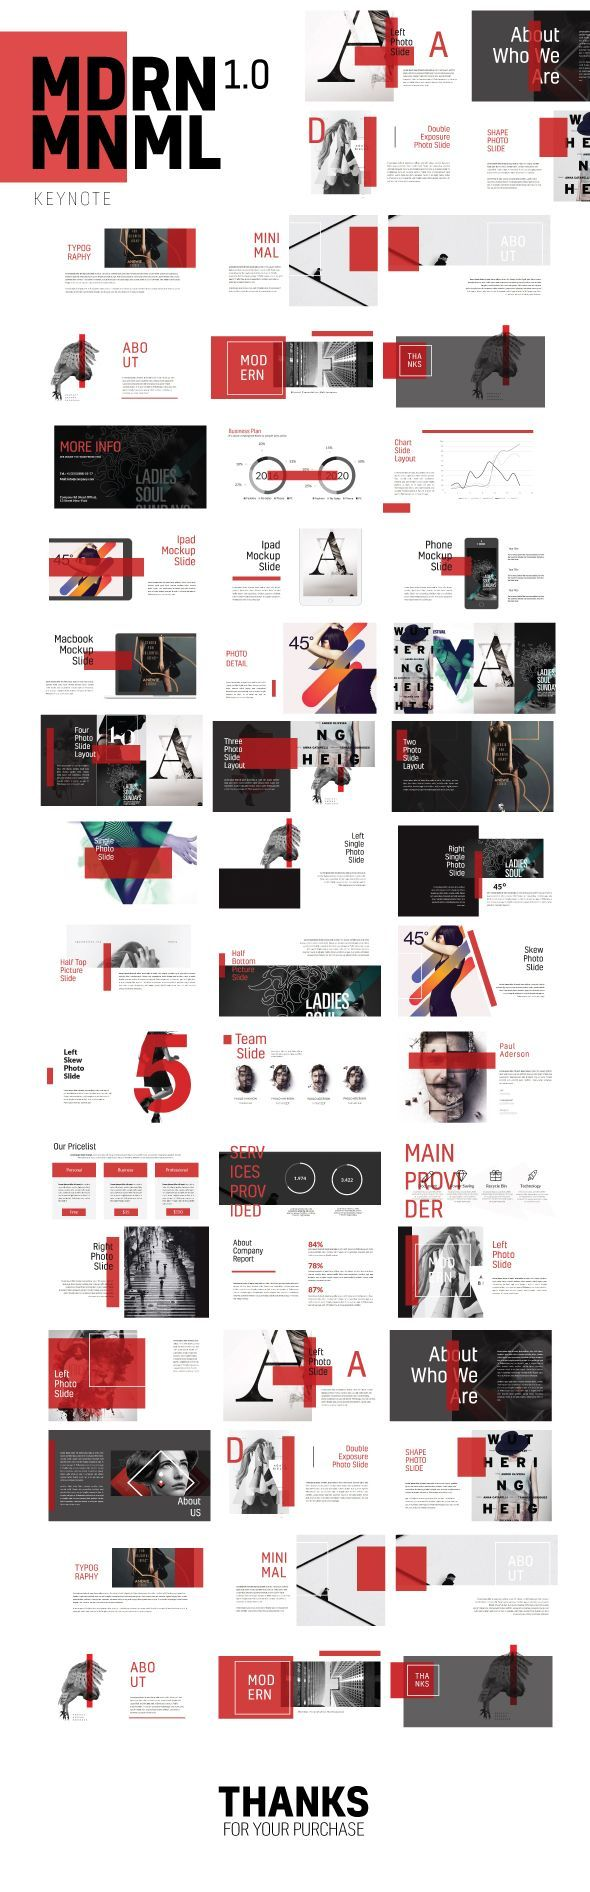 Mdrn Mnml主题演讲模板#benchmarking #enterprise•下载➝https://graphicriver.net/item/mdrn-mnml-keynote-presentation-template/18587271?ref=pxcr